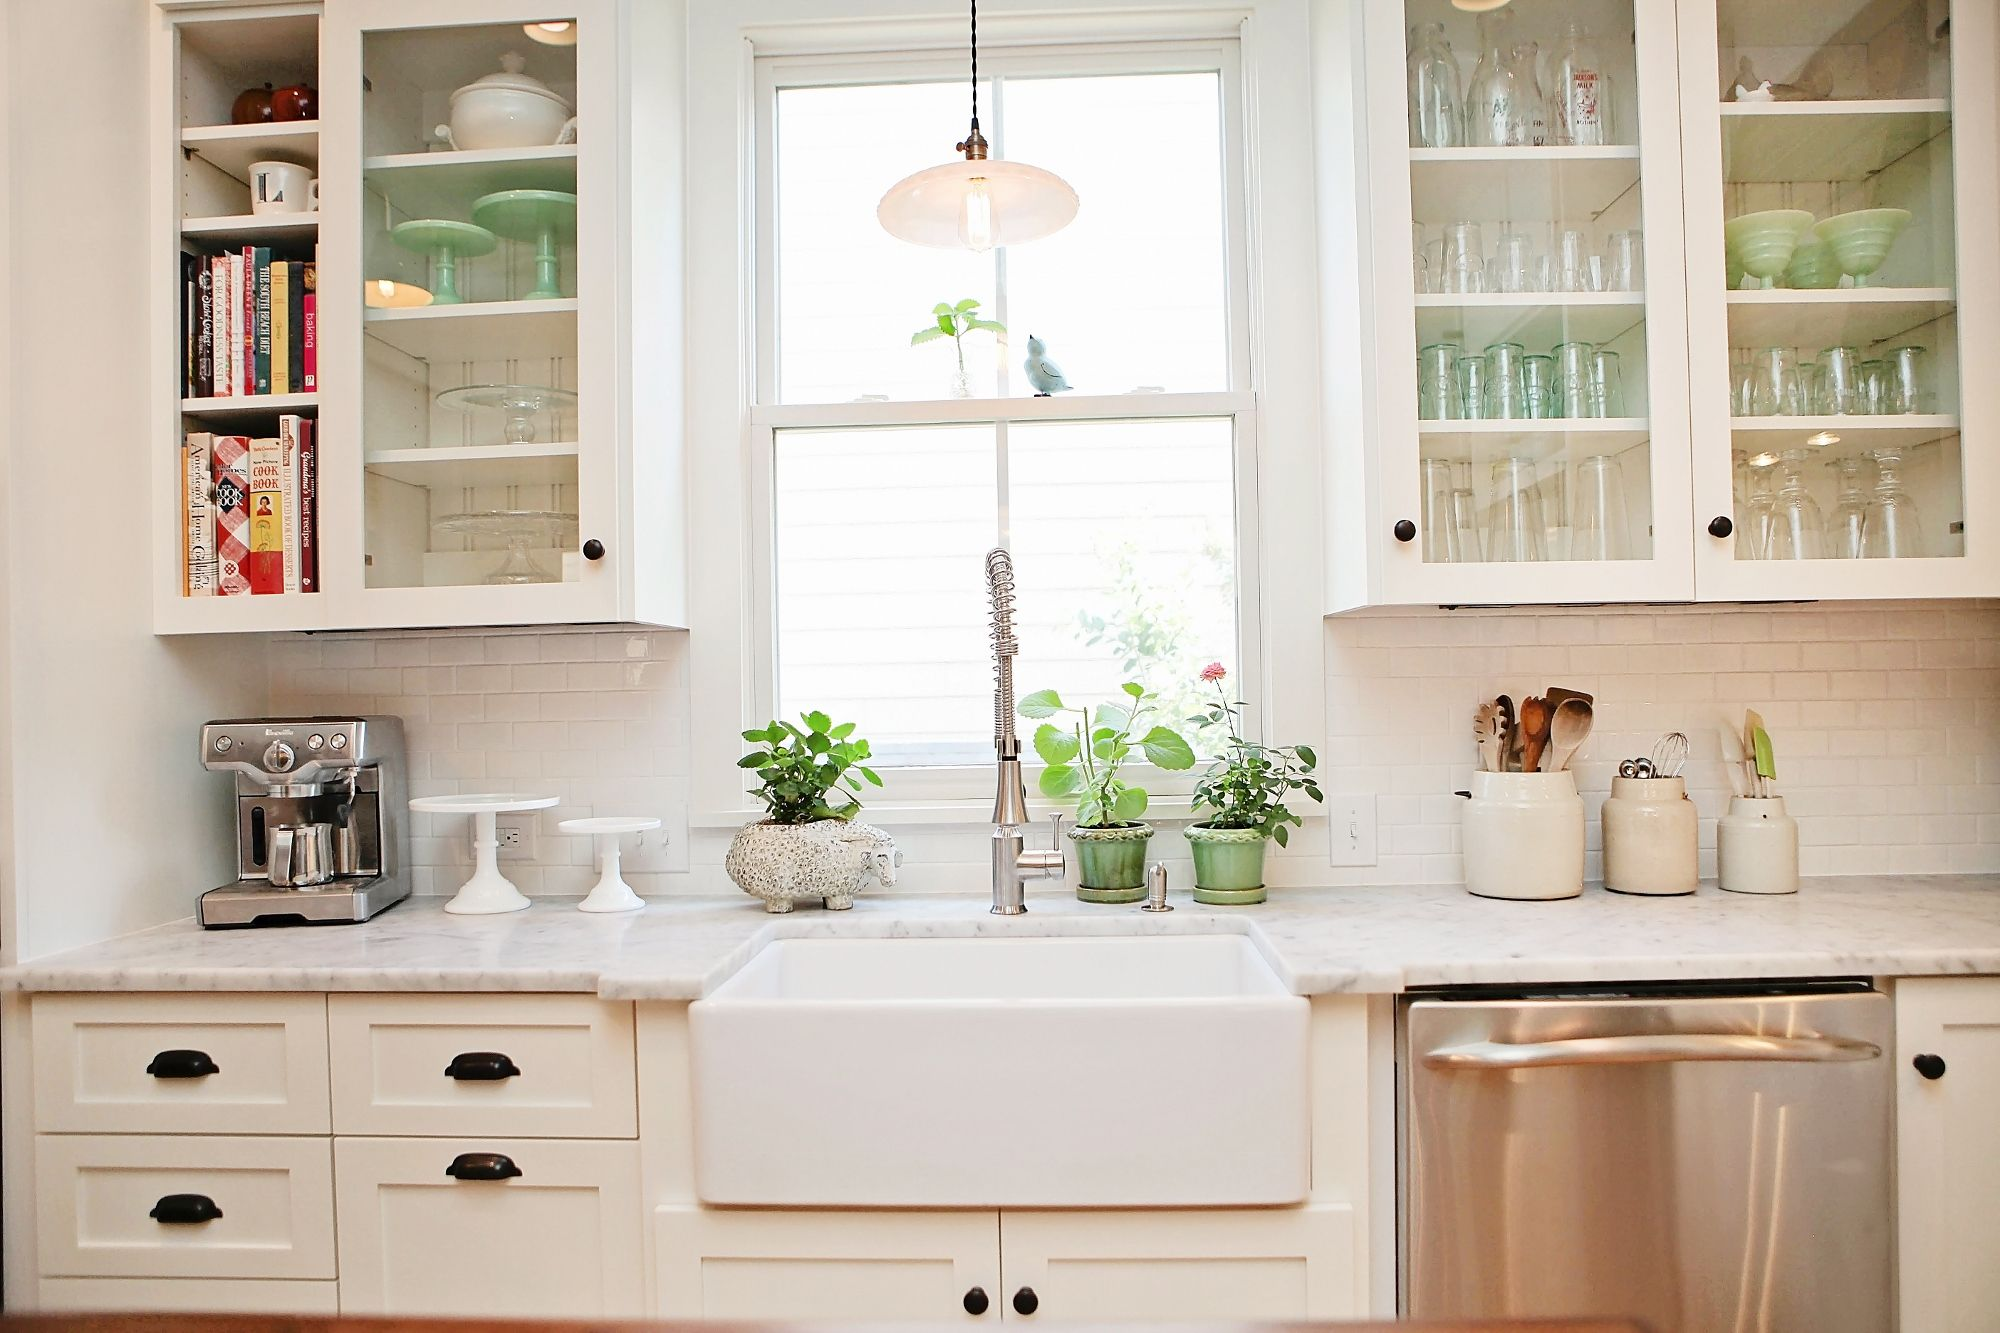 Appealing White Kitchen Subway Backsplash As Well As White Porcelain ...